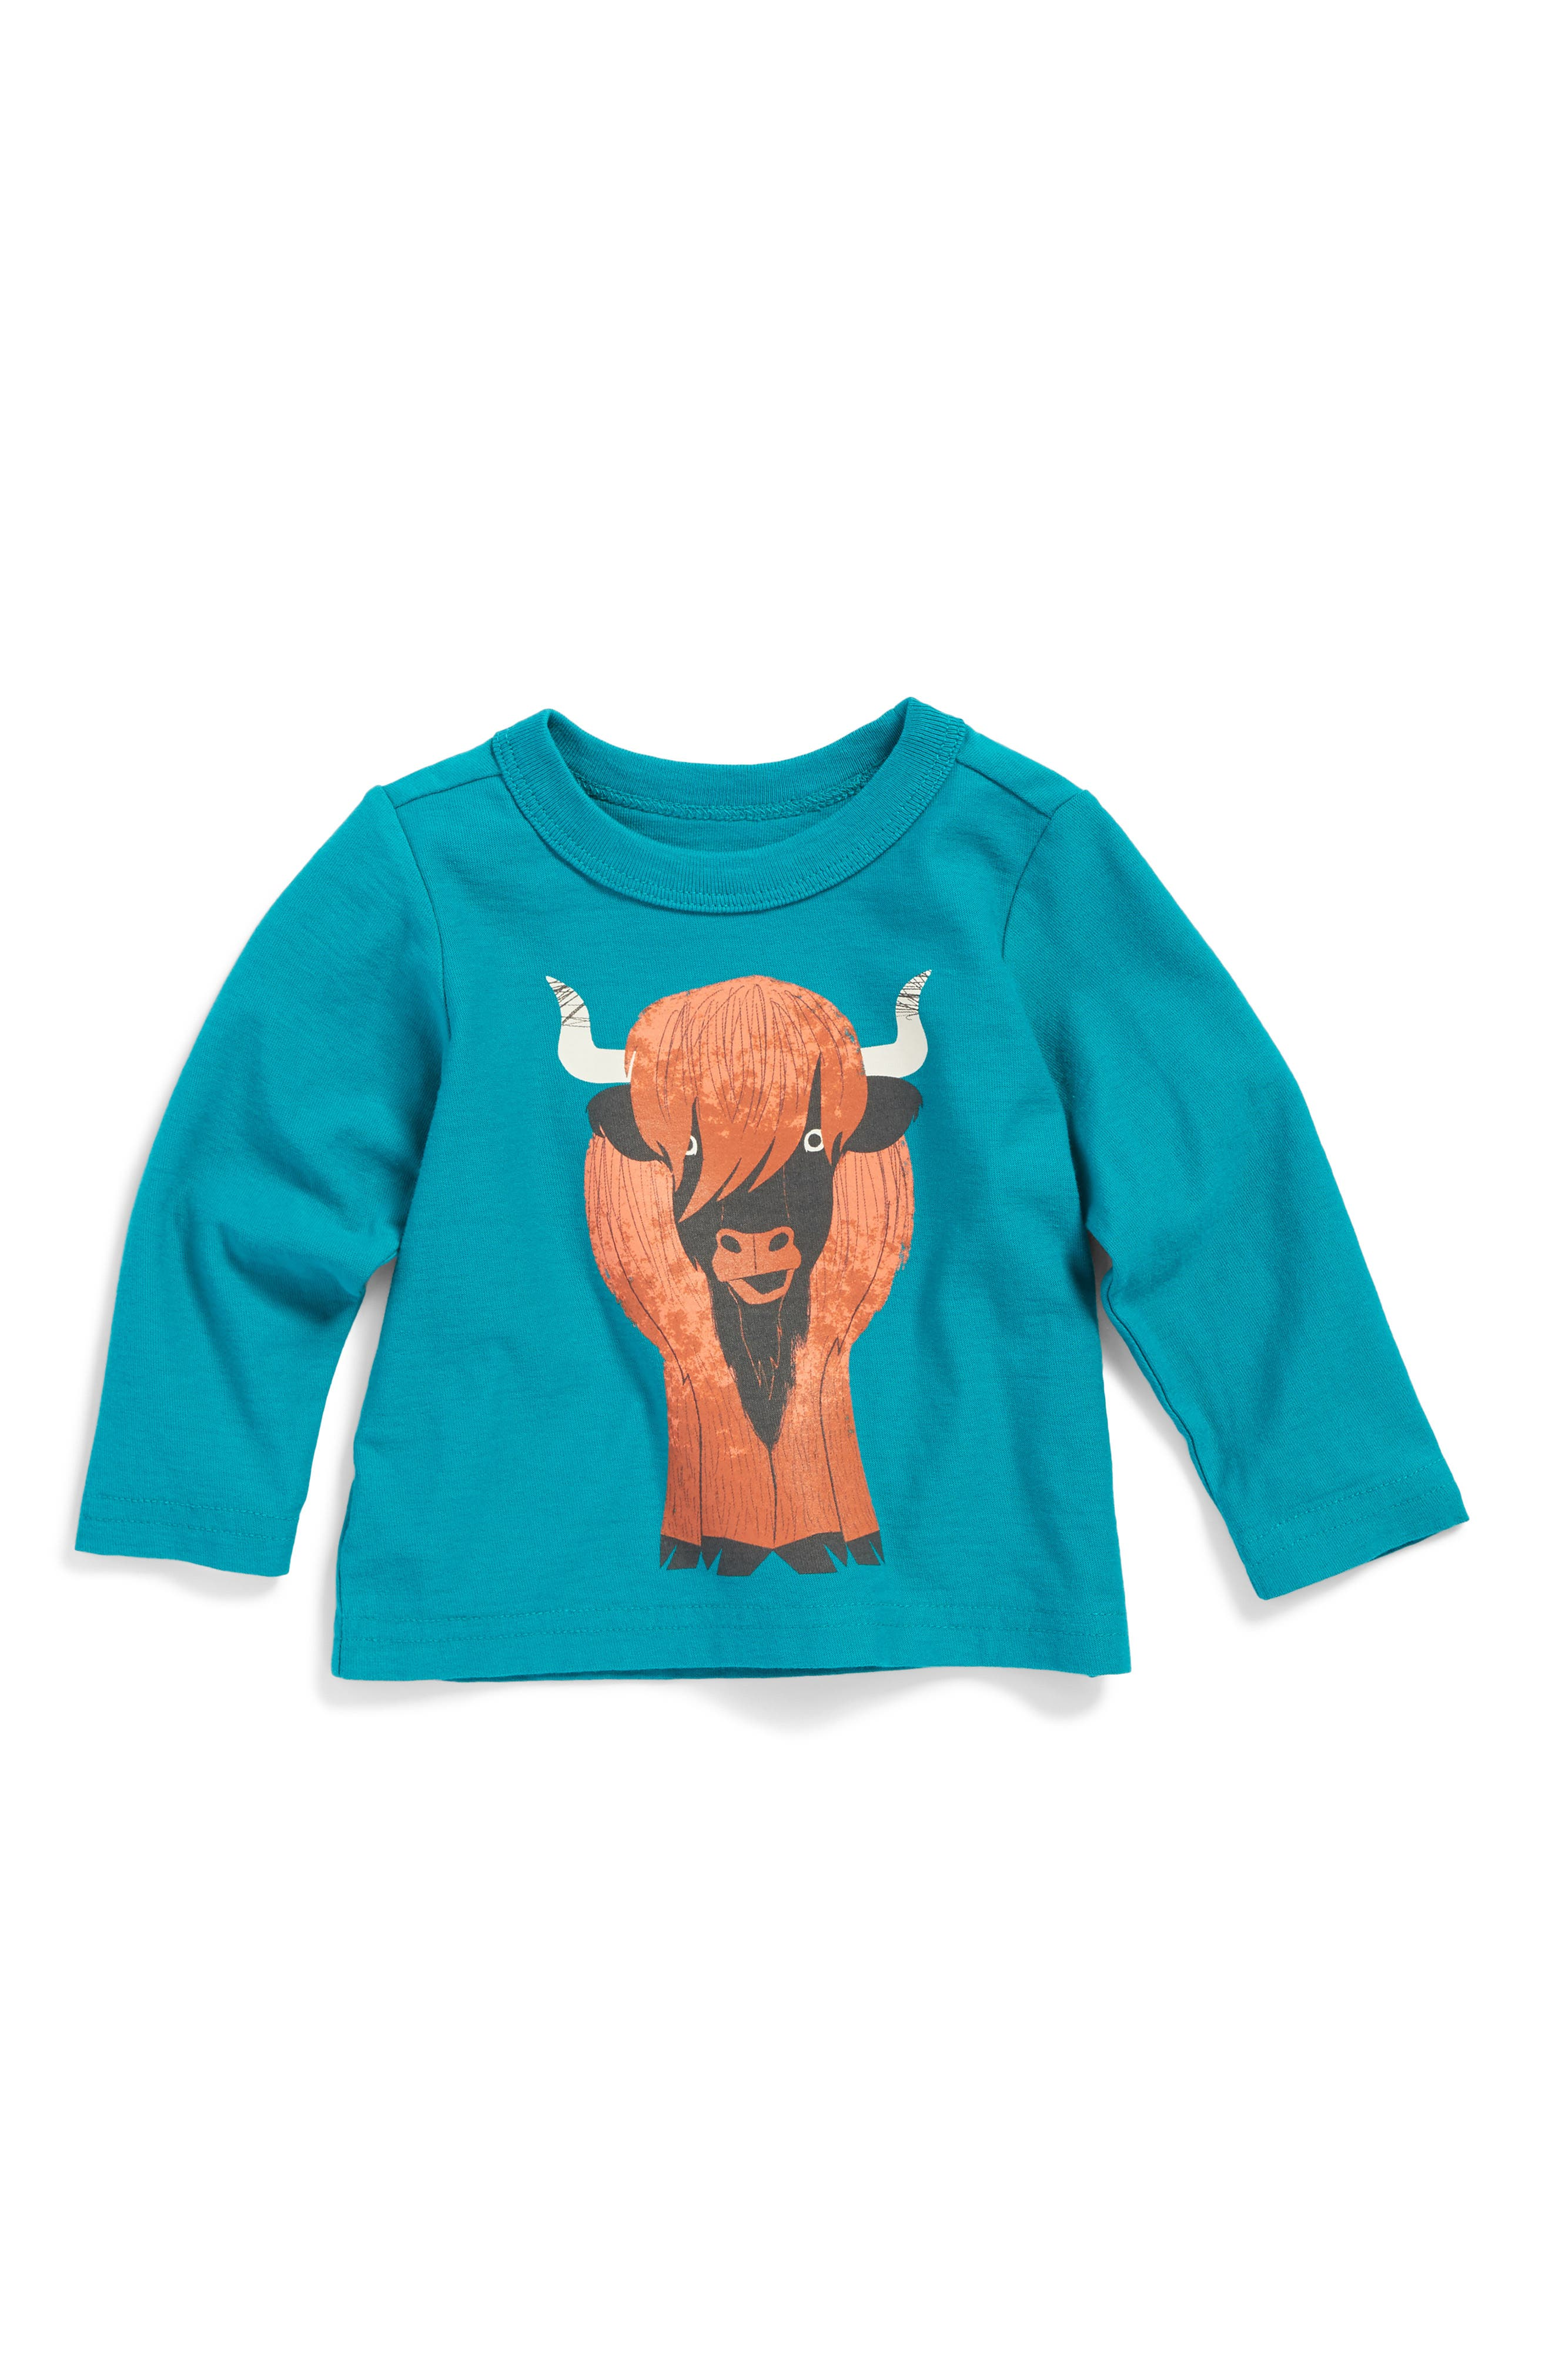 Heeland Coo Graphic T-Shirt,                         Main,                         color, 440